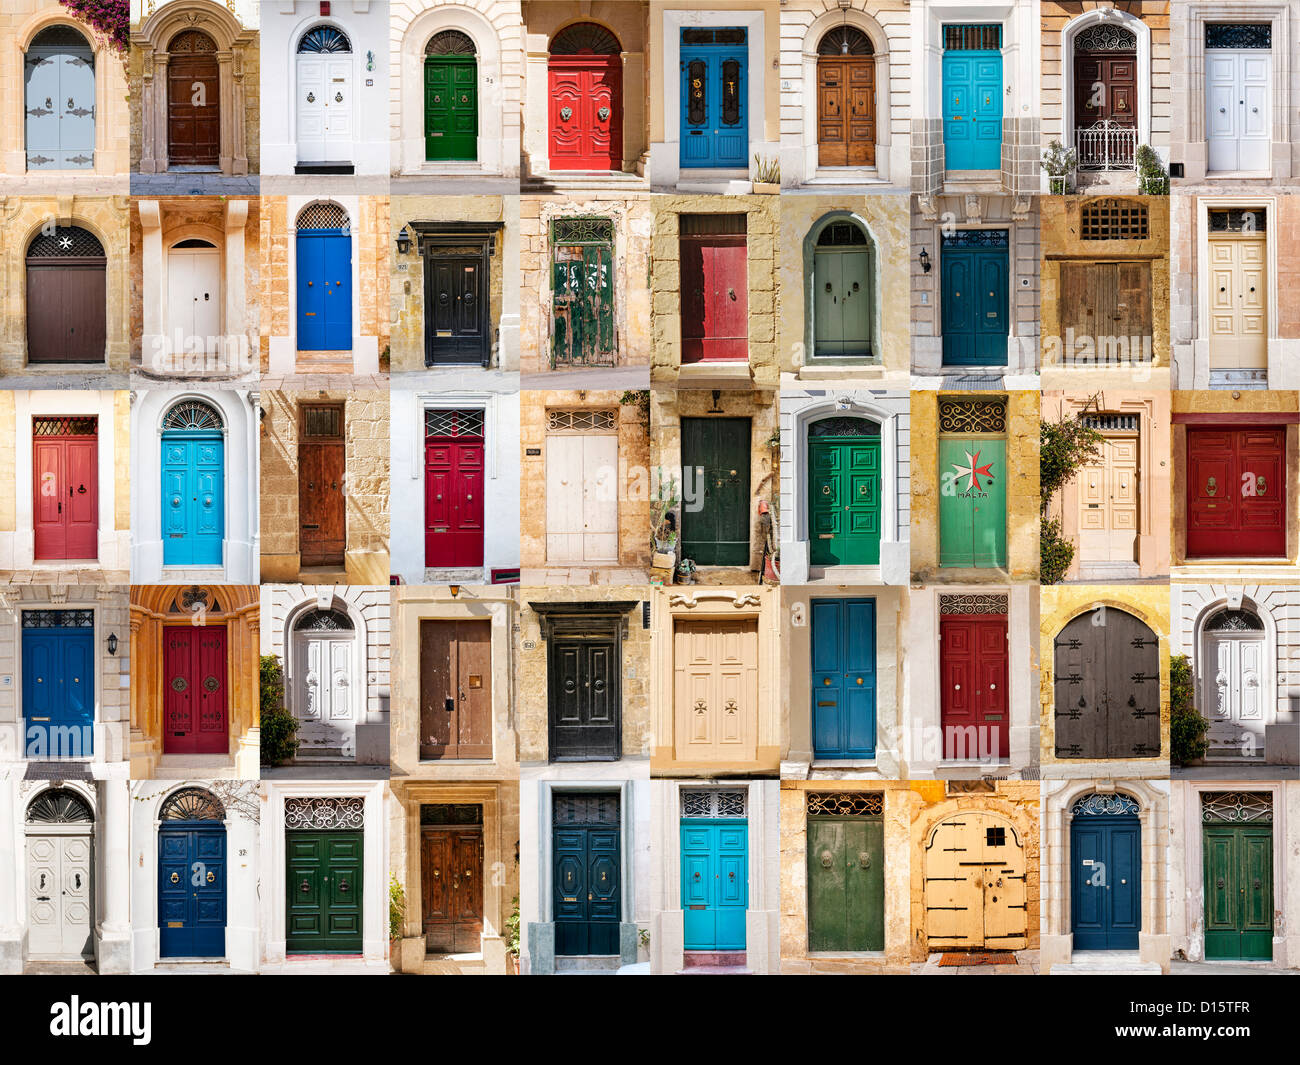 A photo collage of 50 colorful front doors to houses from Malta. - Stock Image